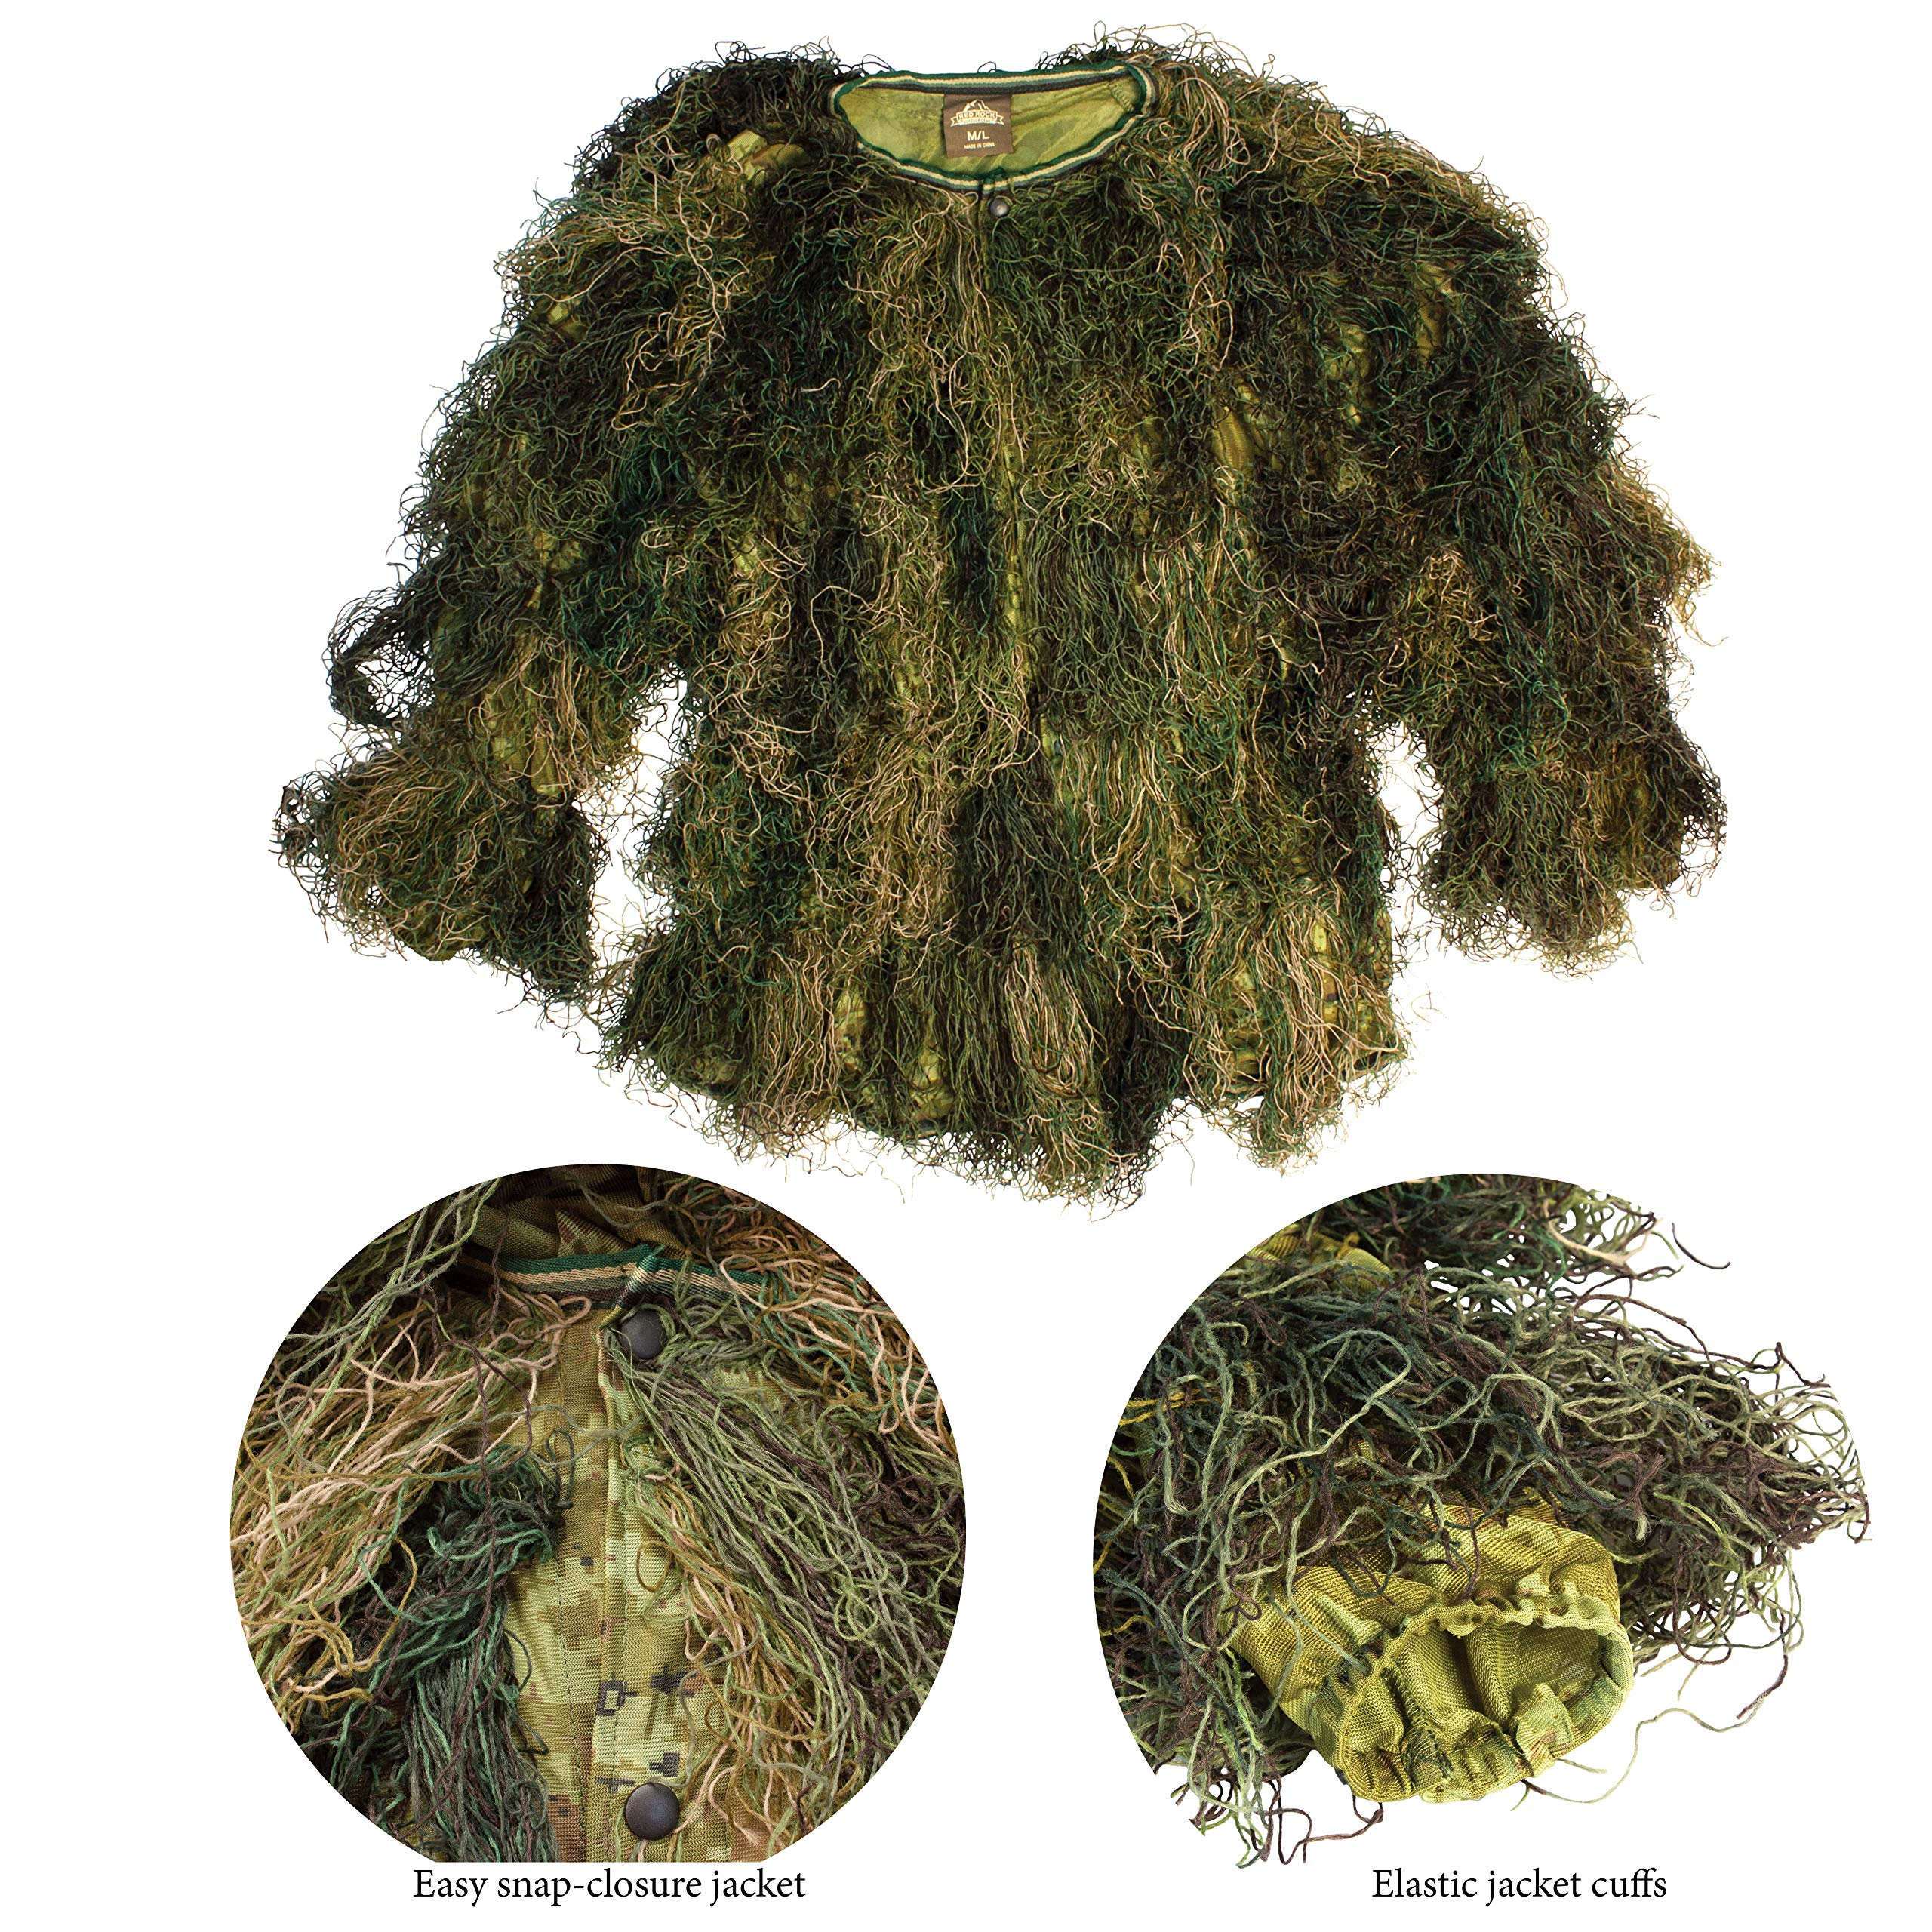 Red Rock Outdoor Gear - Ghillie Suit by Red Rock Outdoor Gear (Image #4)